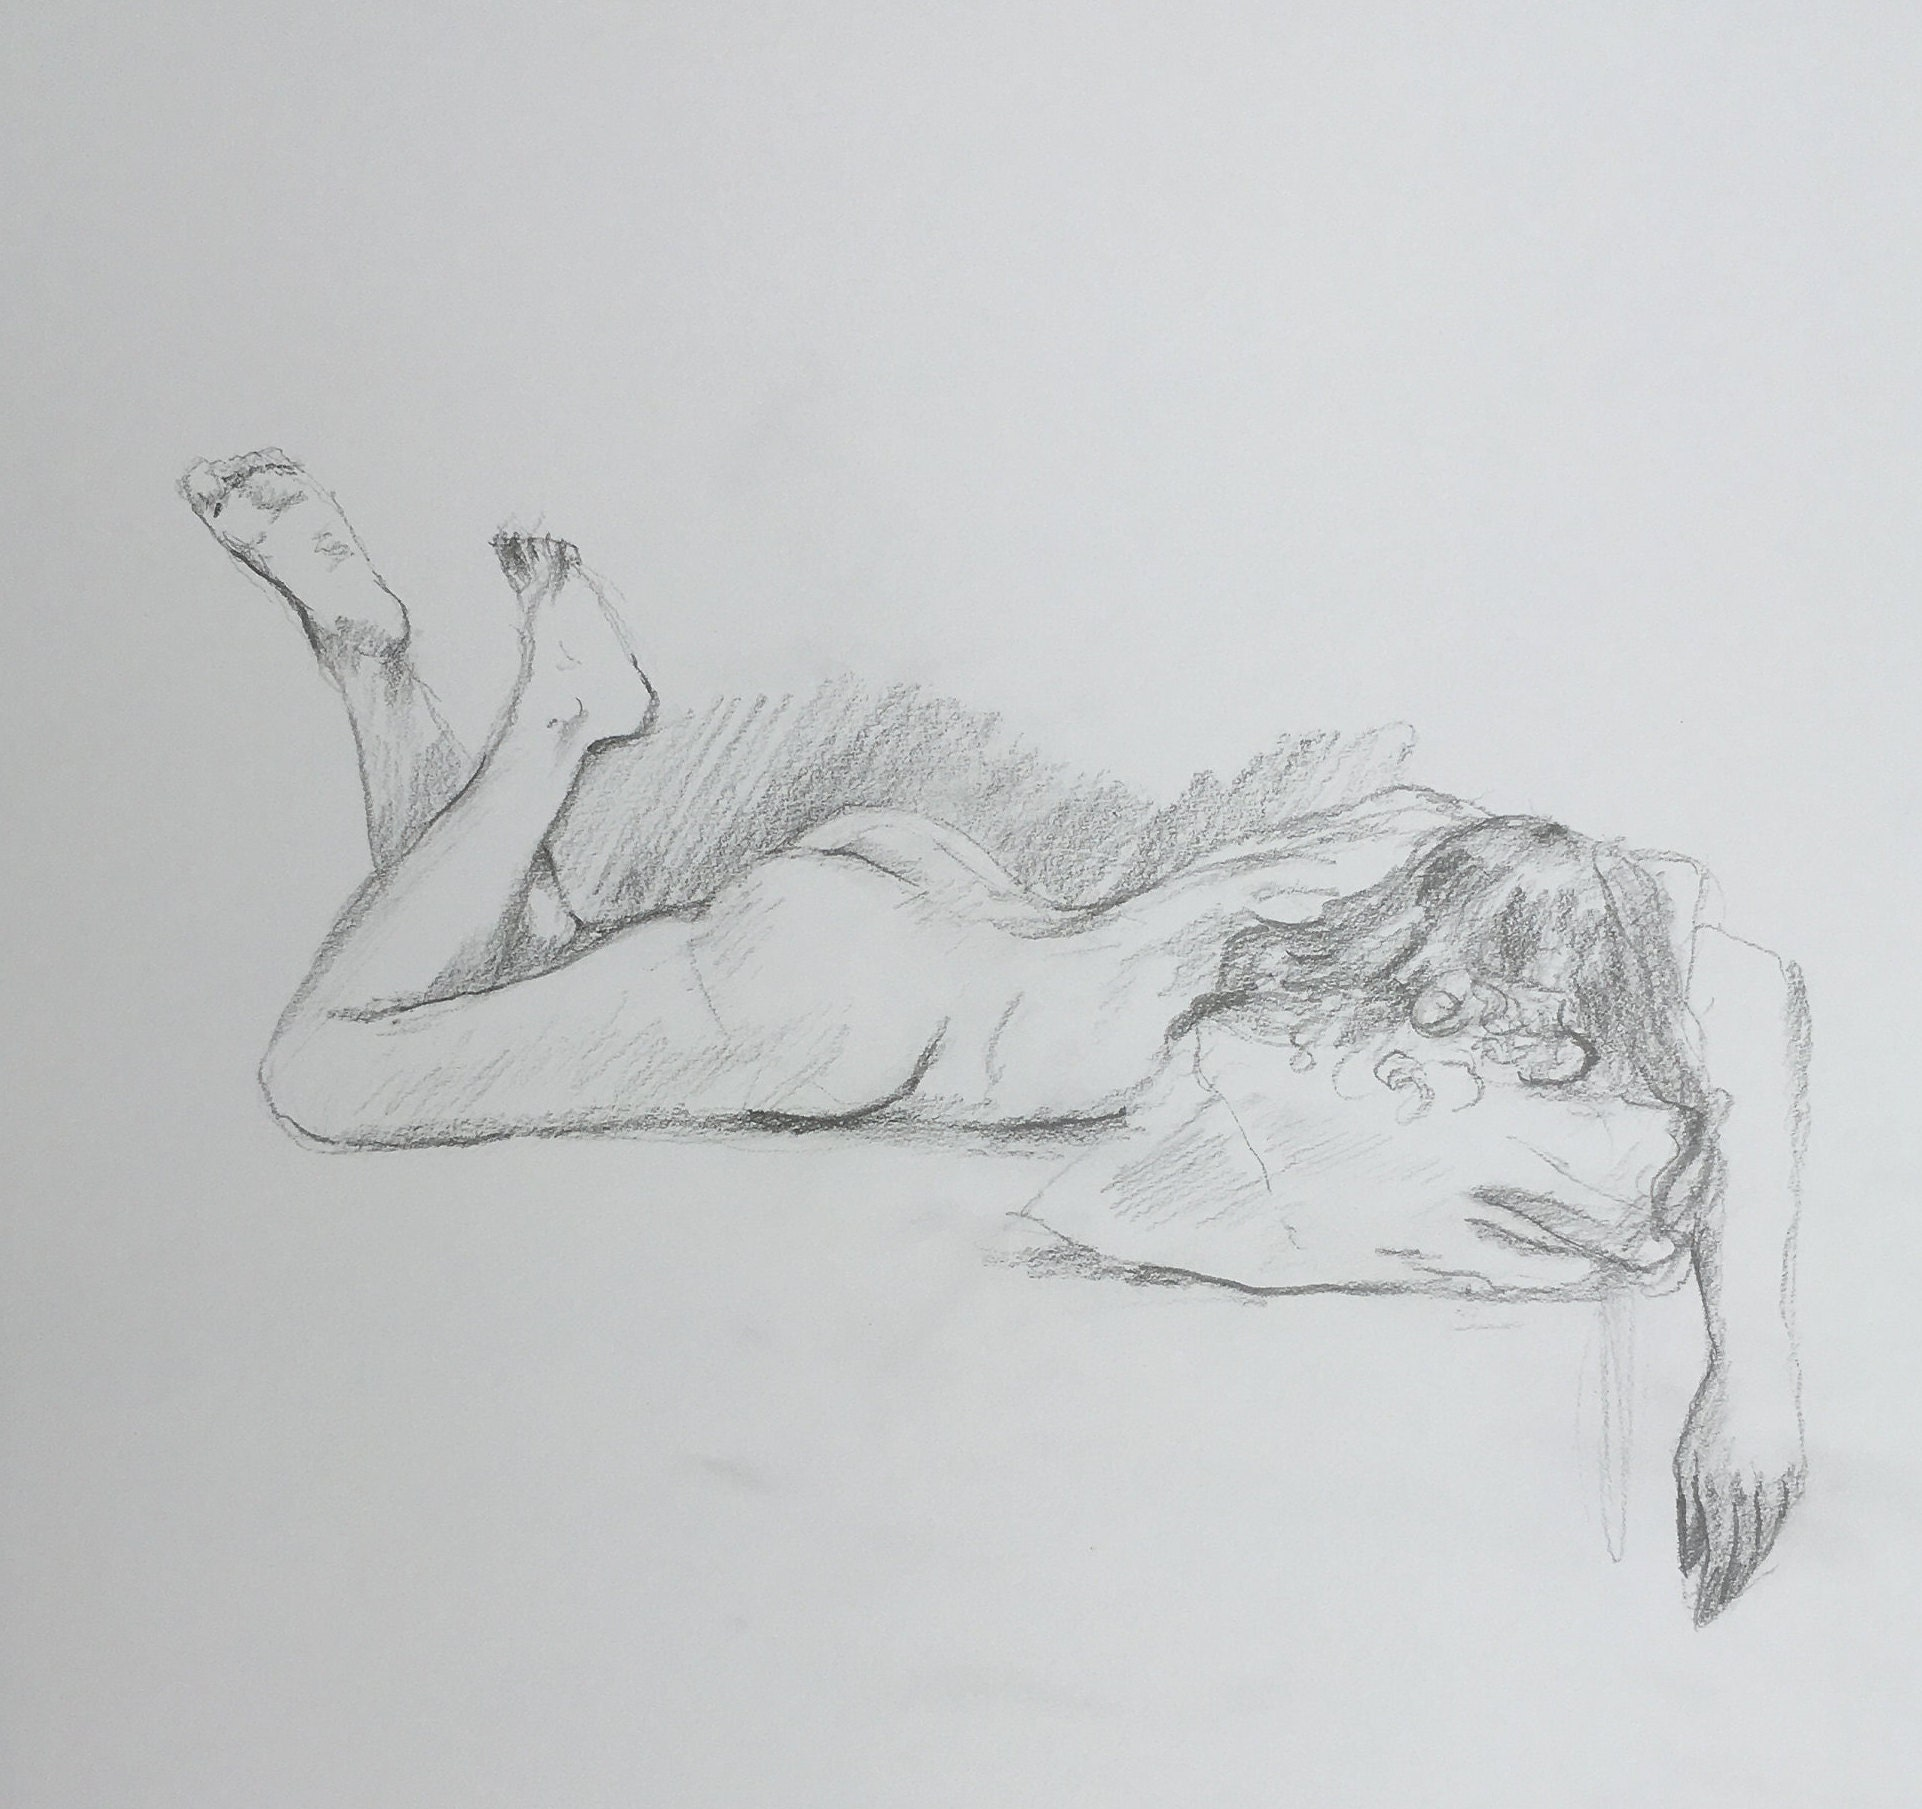 Original handmade drawing nude female woman nude sketch sketch gift man woman graphite pencil